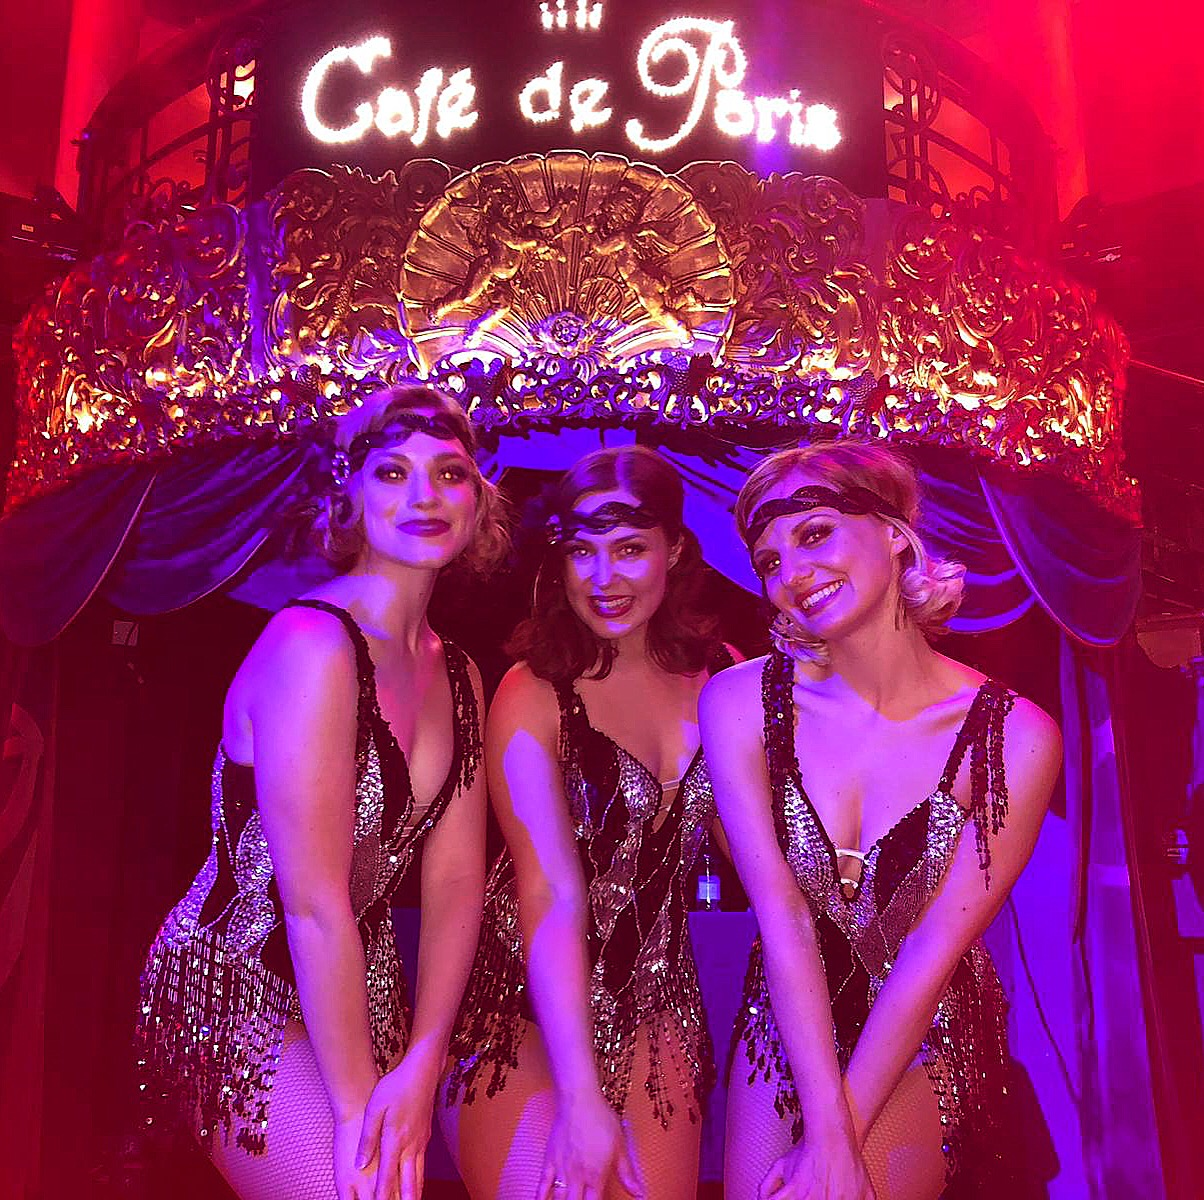 Cafe de Paris, London